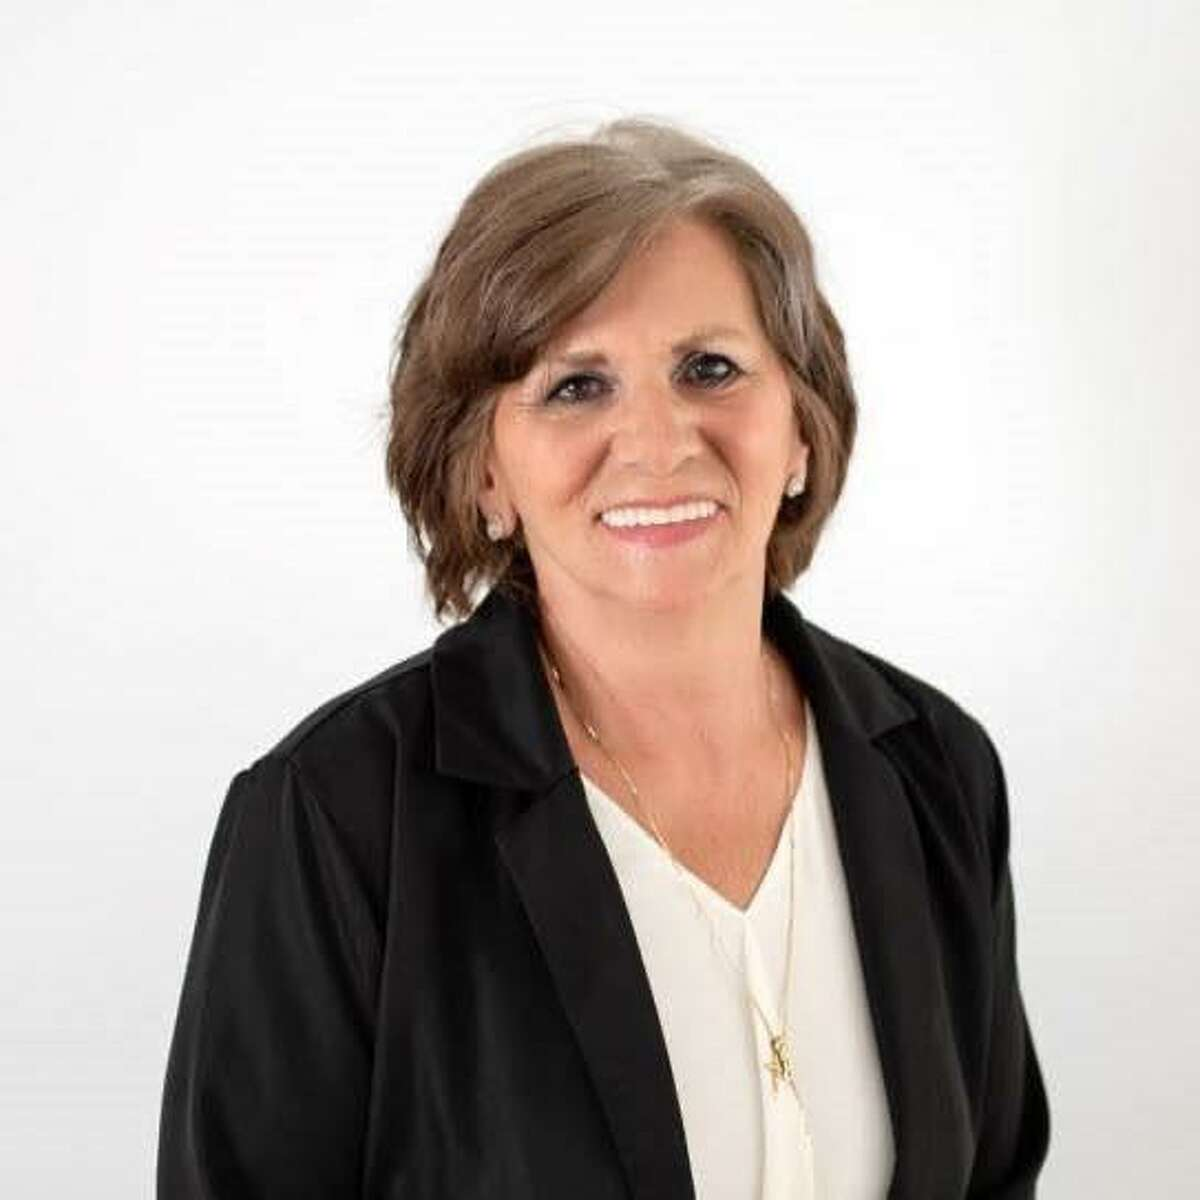 Joanne Romano-Csonka, the Republican candidate for the 133rd District assembly seat.